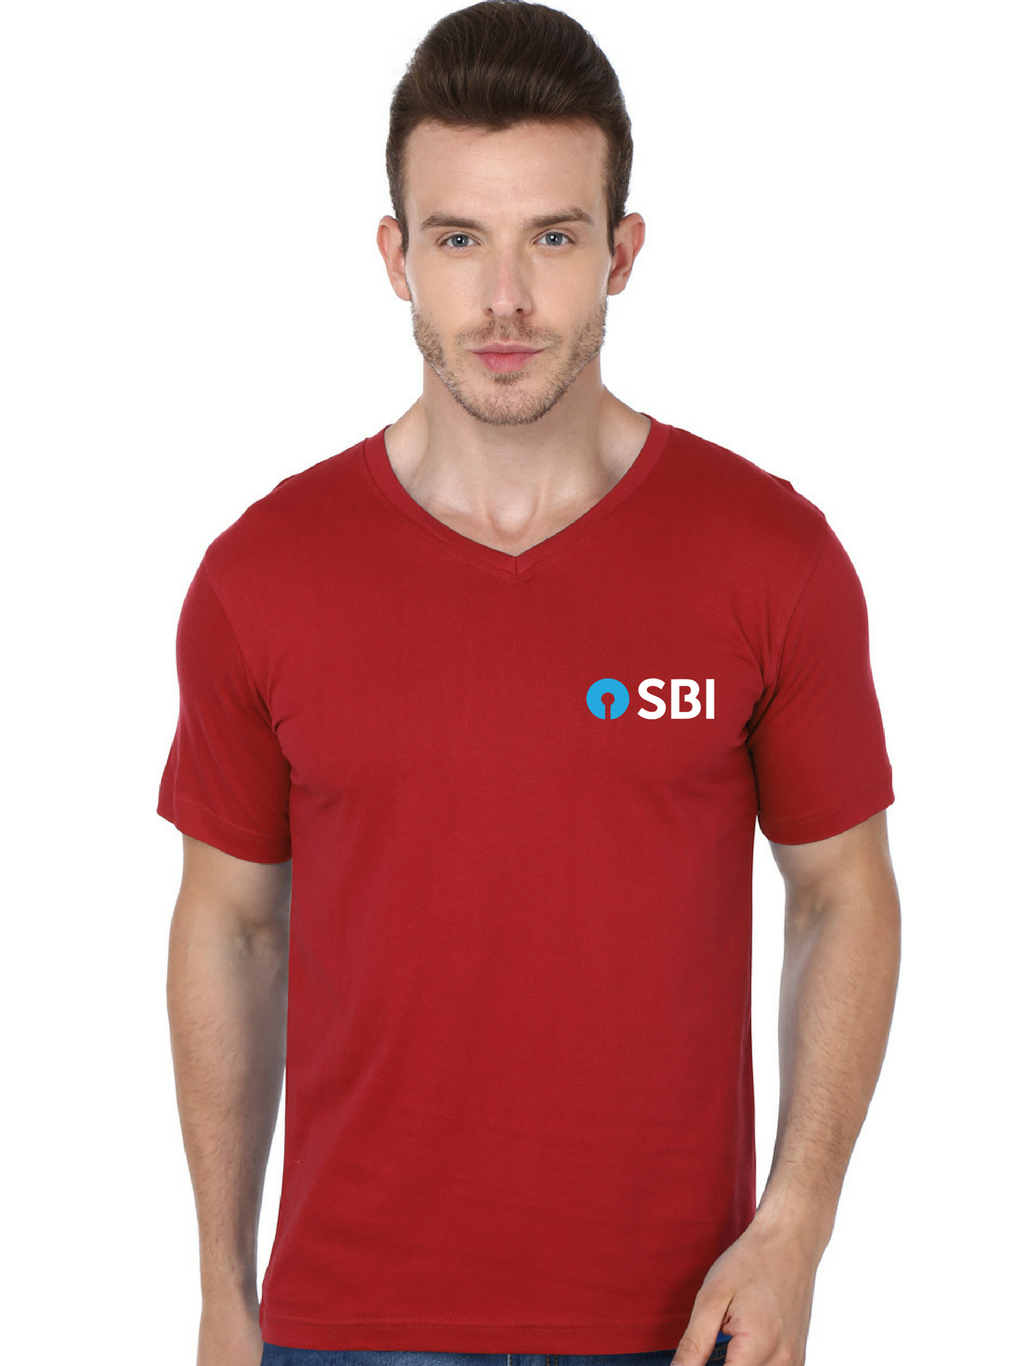 SBI V-Neck T-shirt